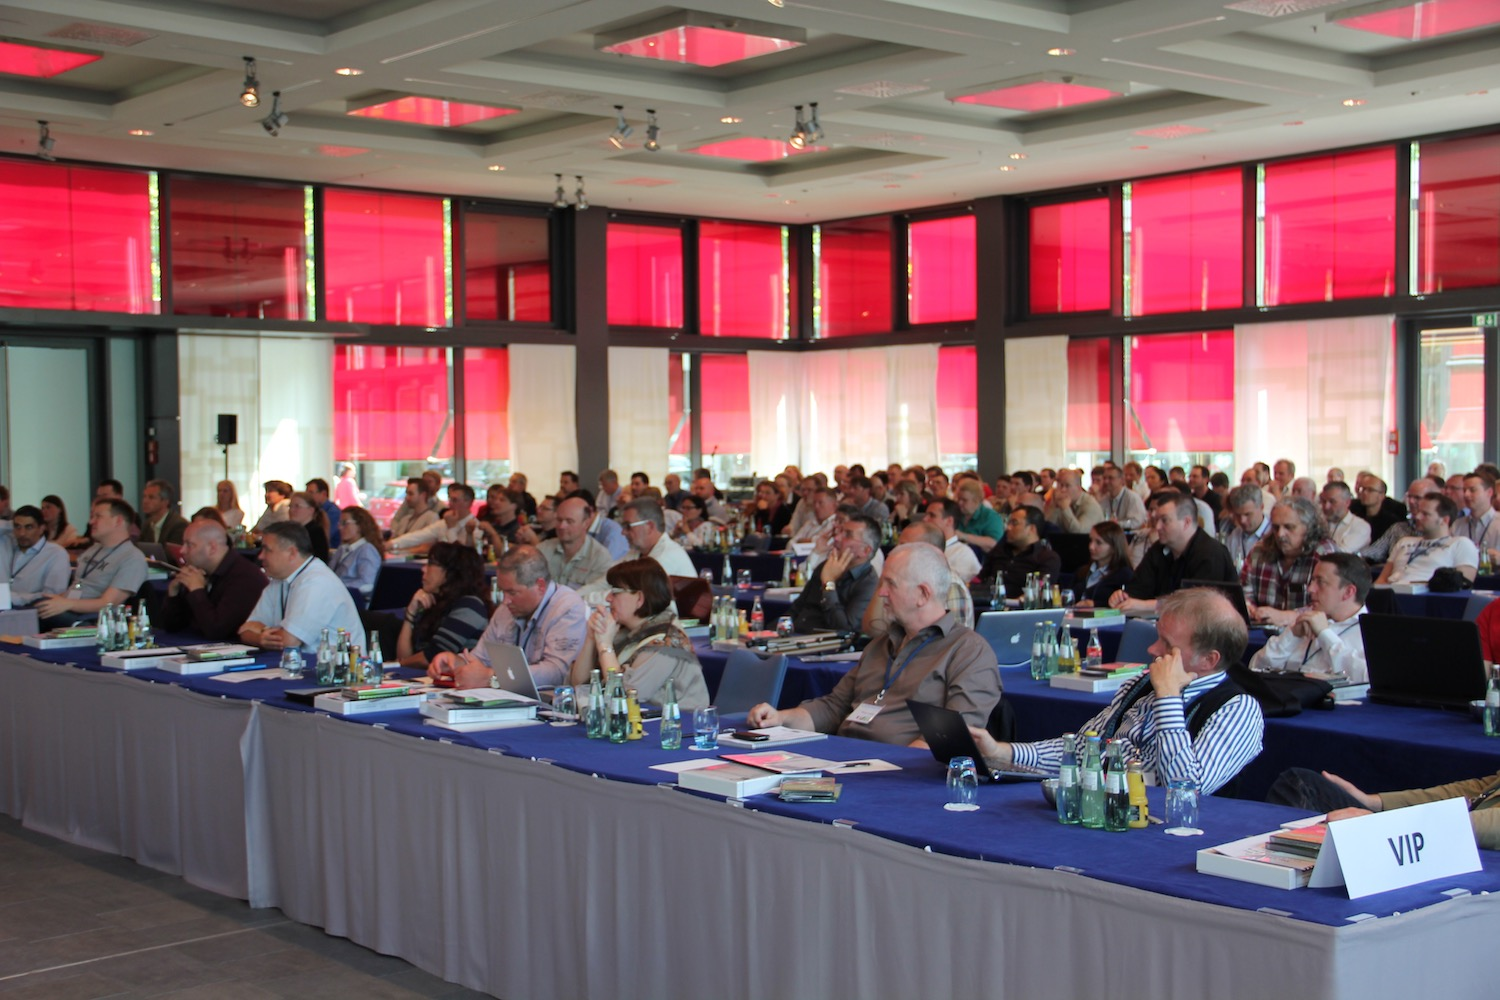 Der Internet Marketing Kongress 2012 fand im Hotel Intercontinental in Berlin statt.